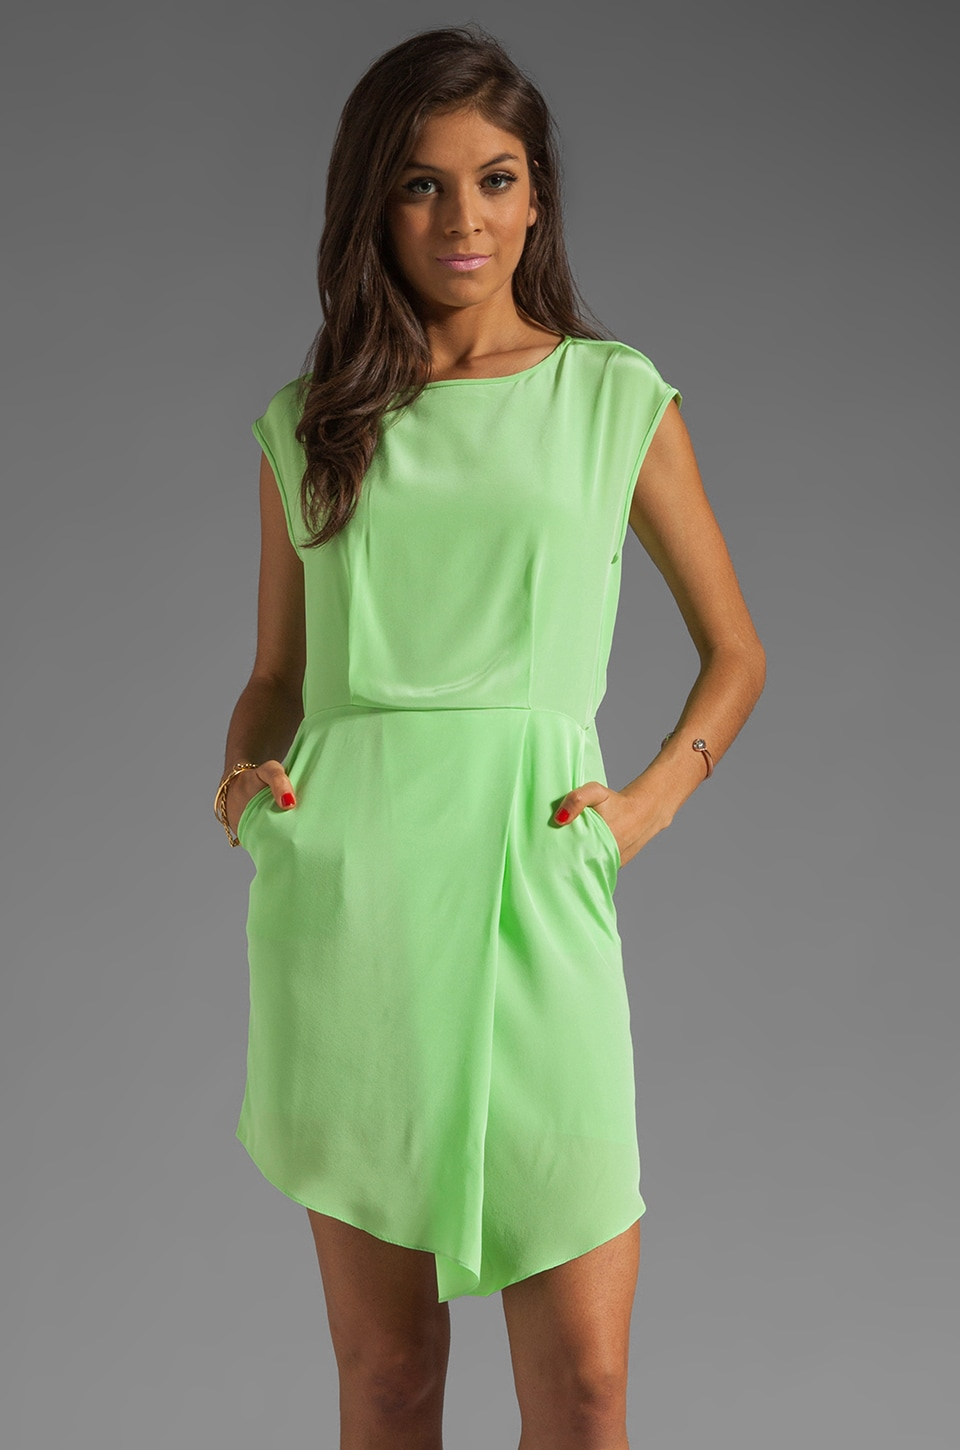 Tibi Solid Silk Drape Dress in Neon Green